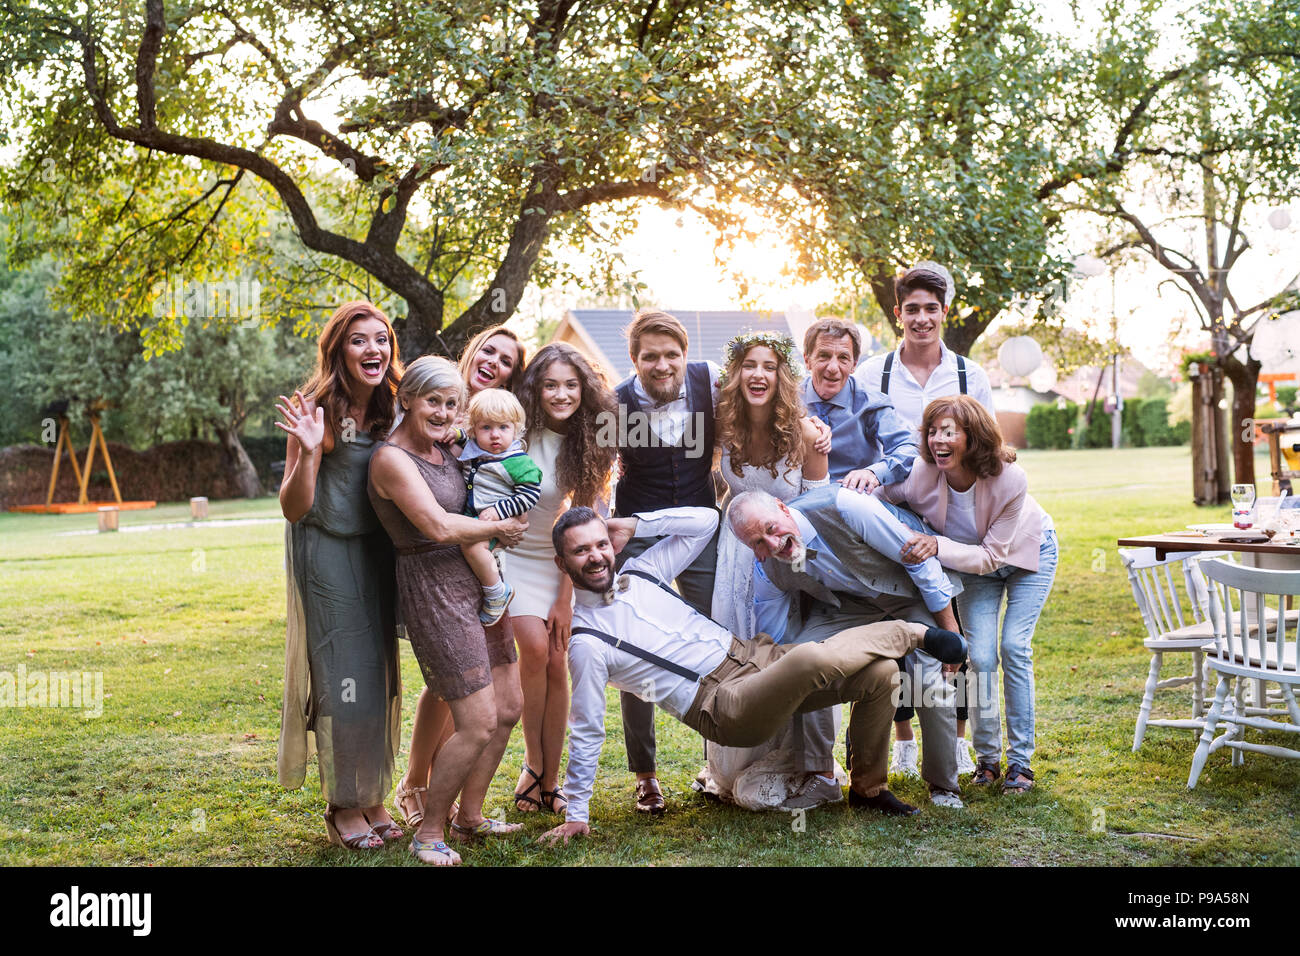 Bride, groom and guests posing for the photo at wedding reception outside in the backyard. - Stock Image